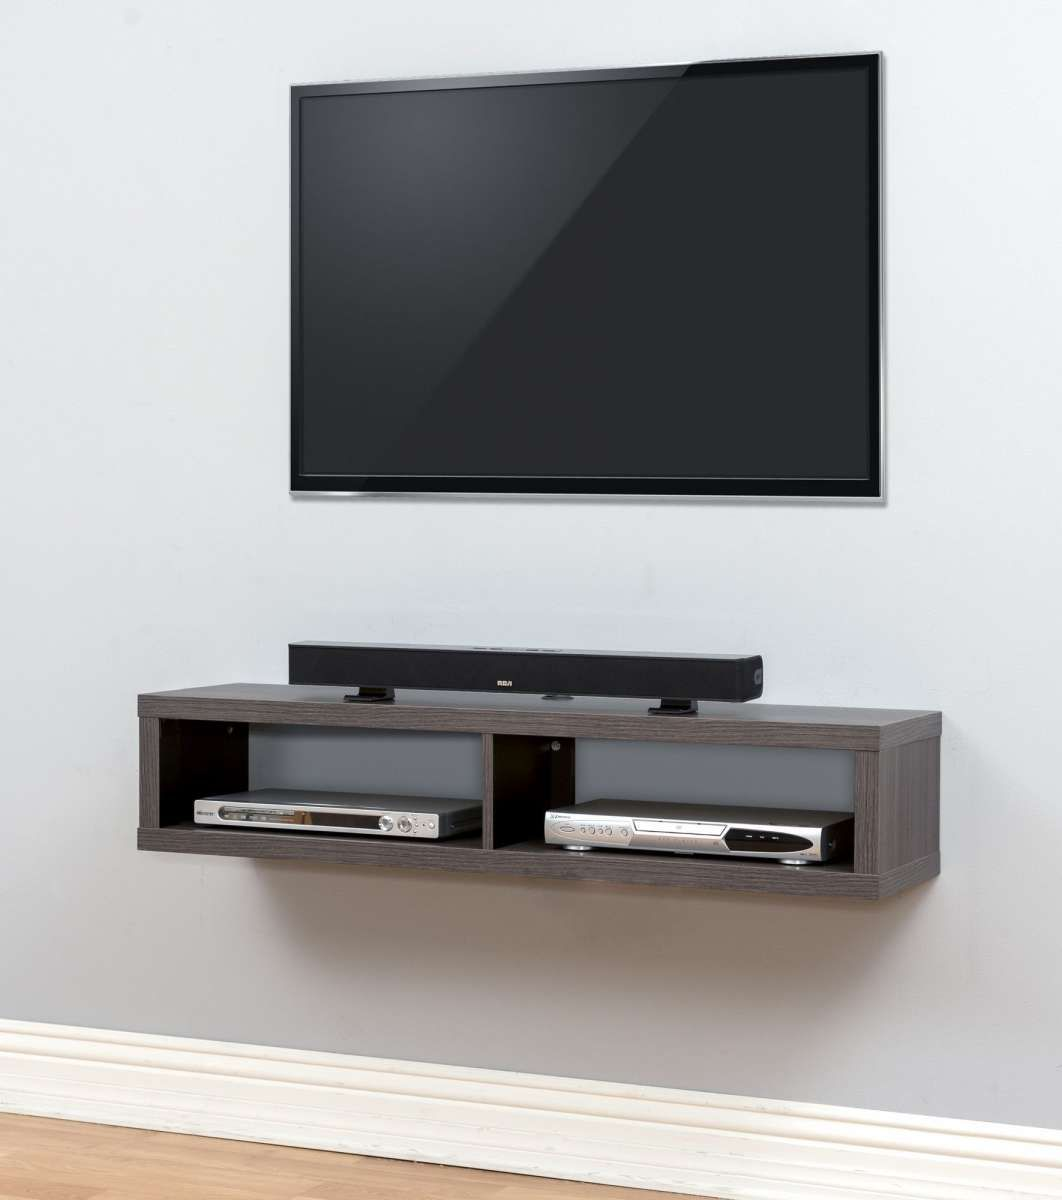 12 Exceptional Wood Component Wall Shelf Photos Check More At